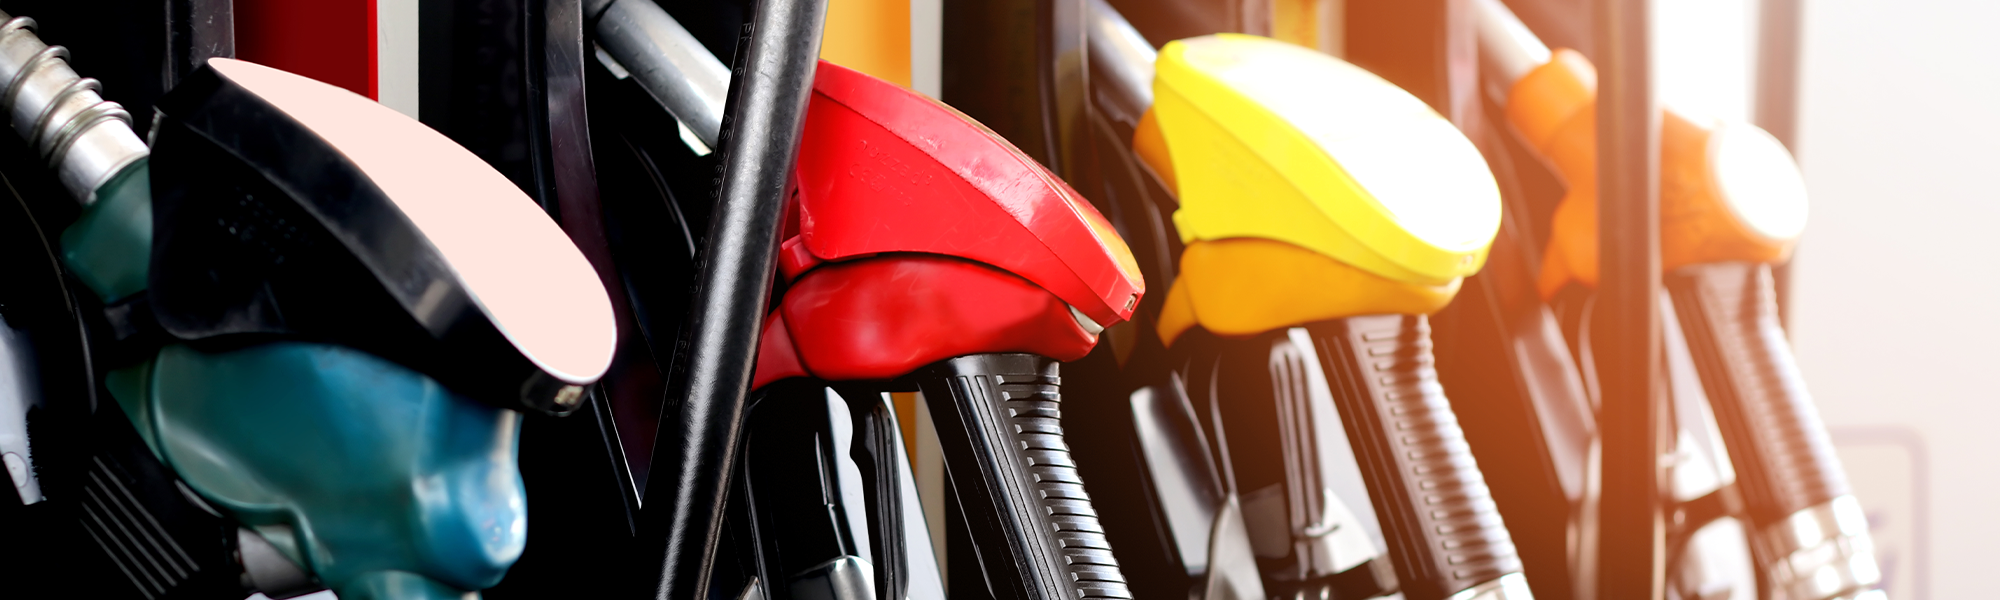 How does the fuel pump at the filling station know when your fuel tank is completely full?